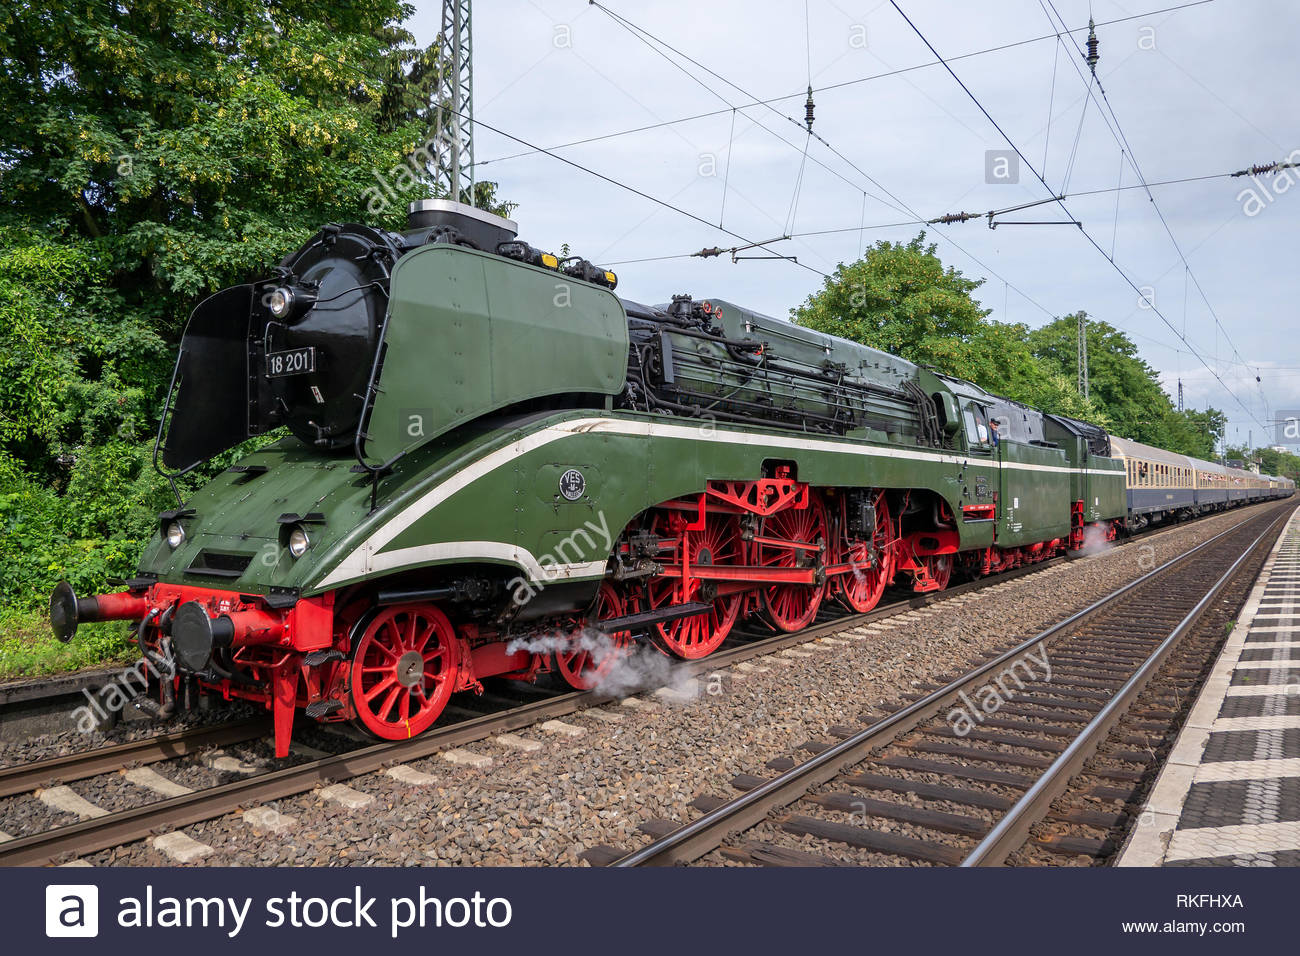 The highspeed steam locomotive 18 201 at the train station Bonn-Beuel - Stock Image